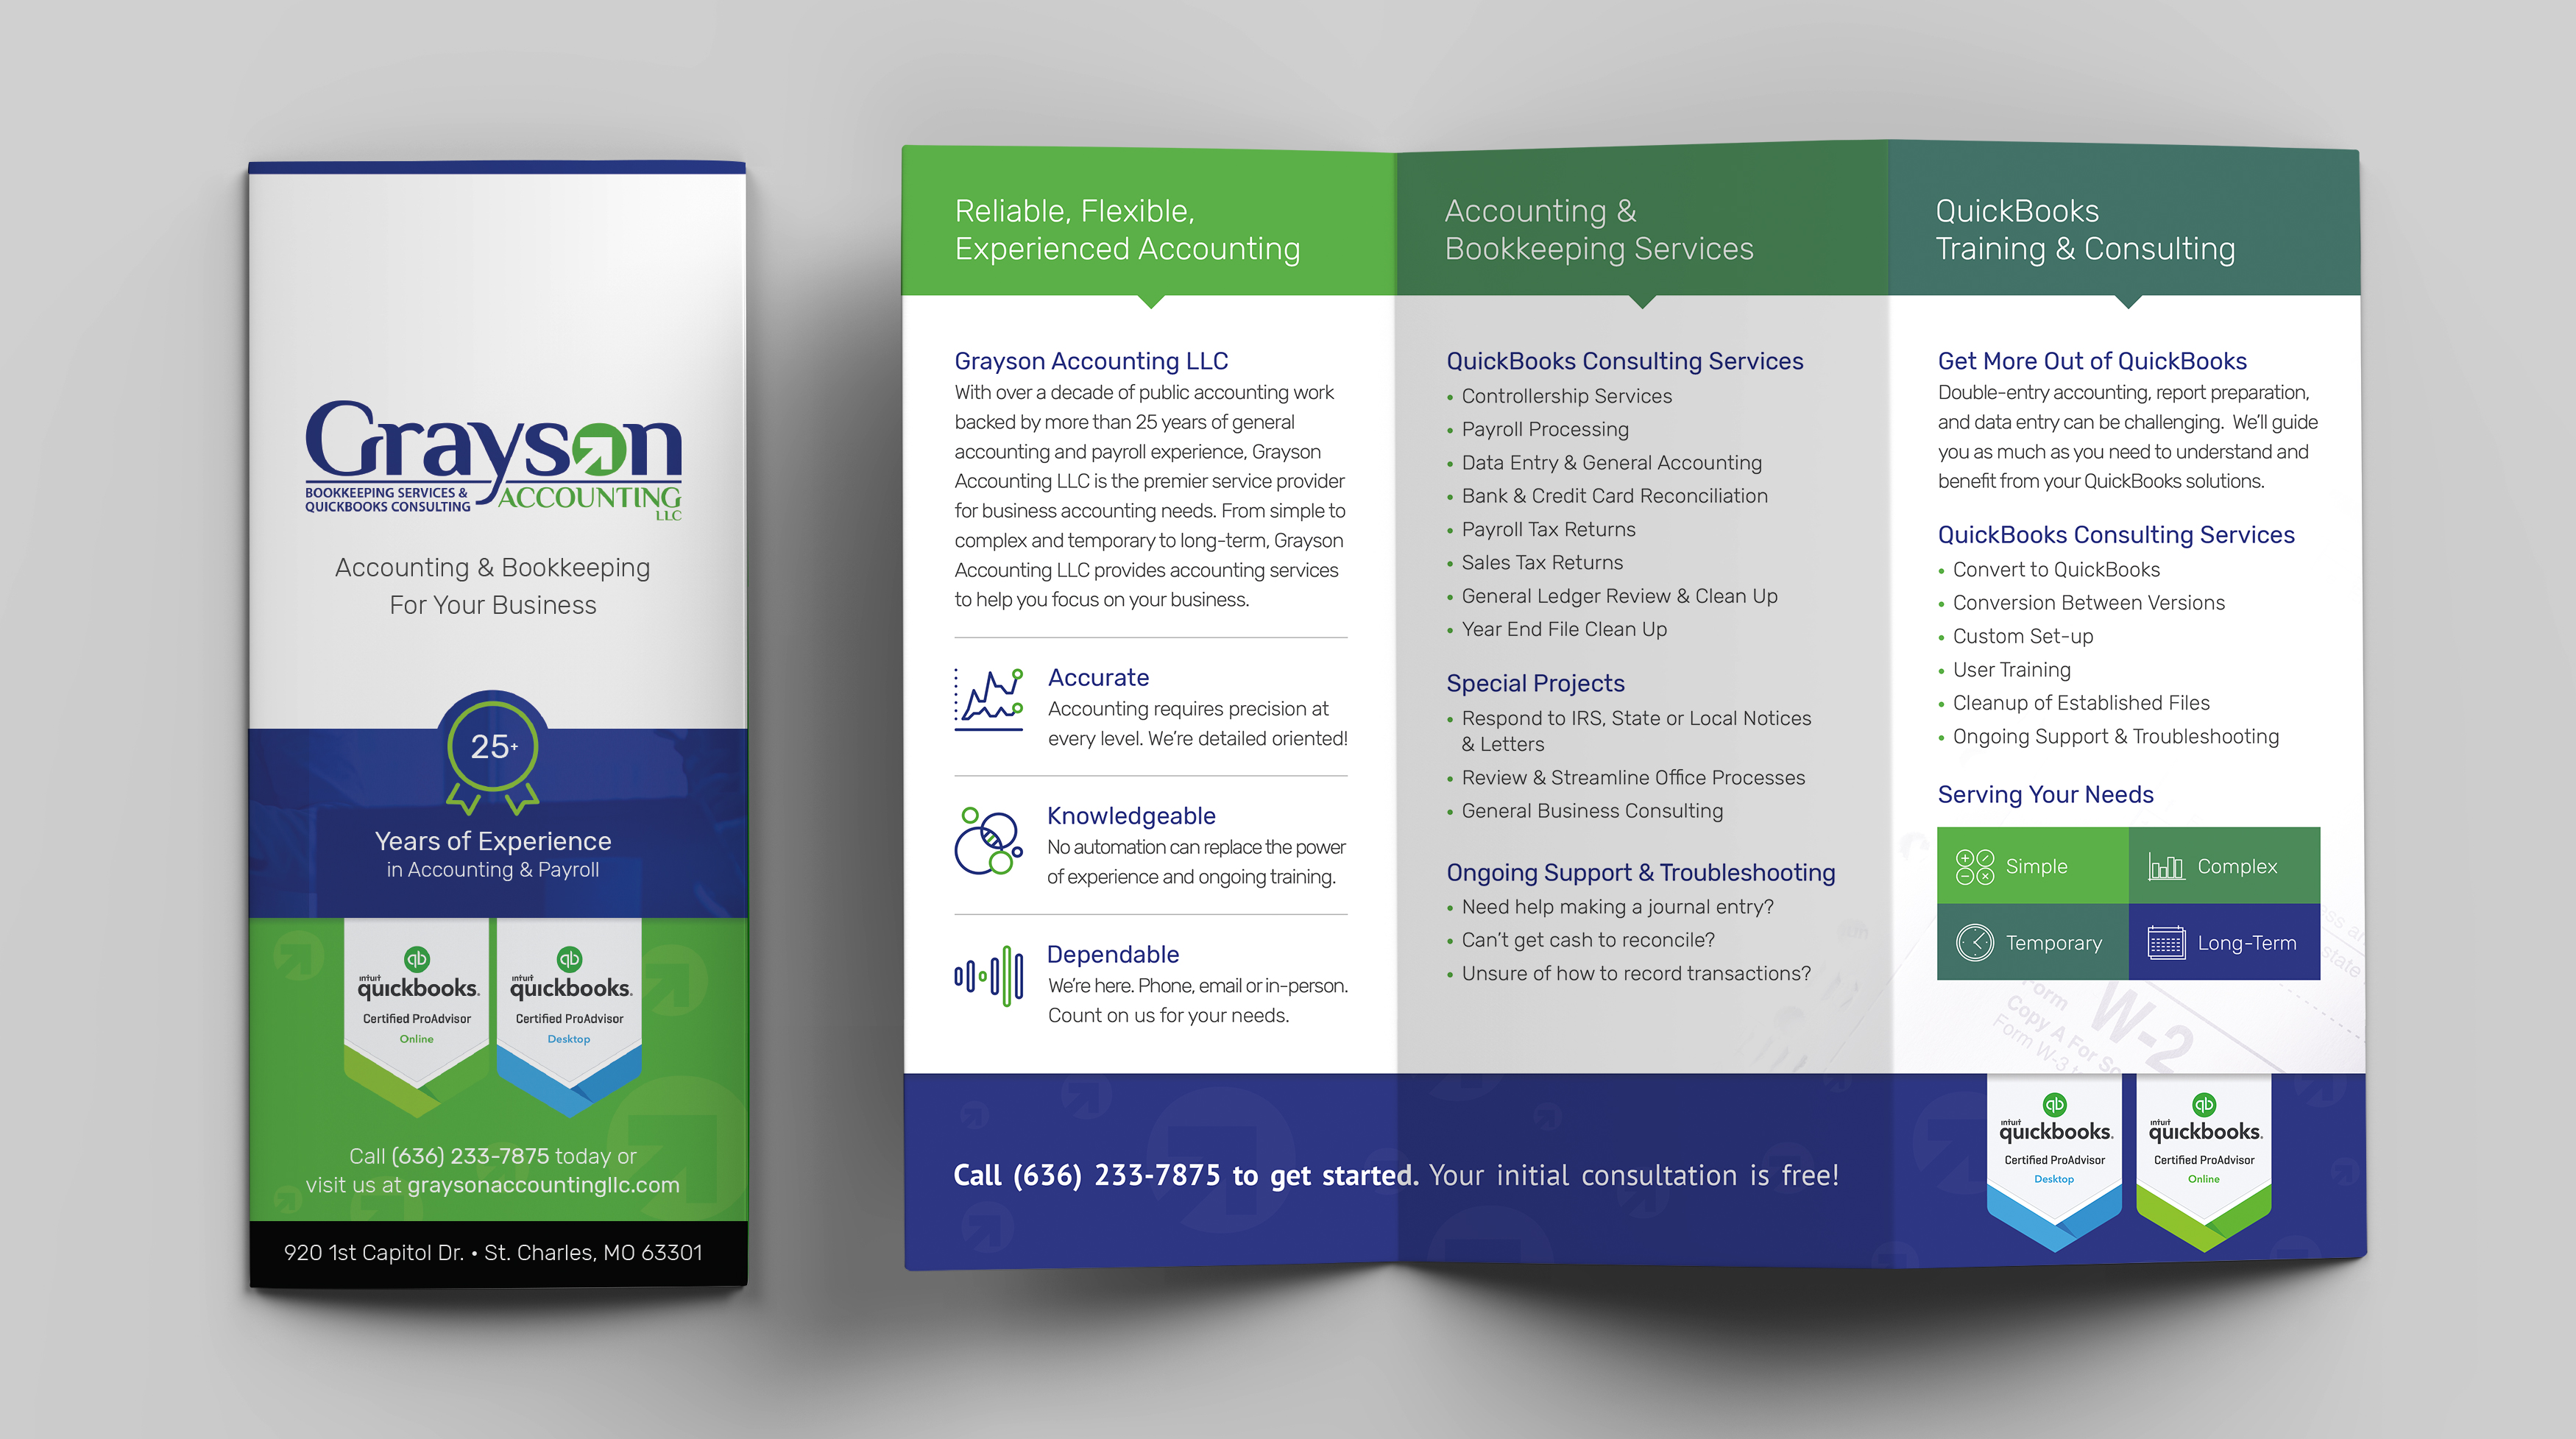 grayson-account-graphic-design-services-in-st-louis